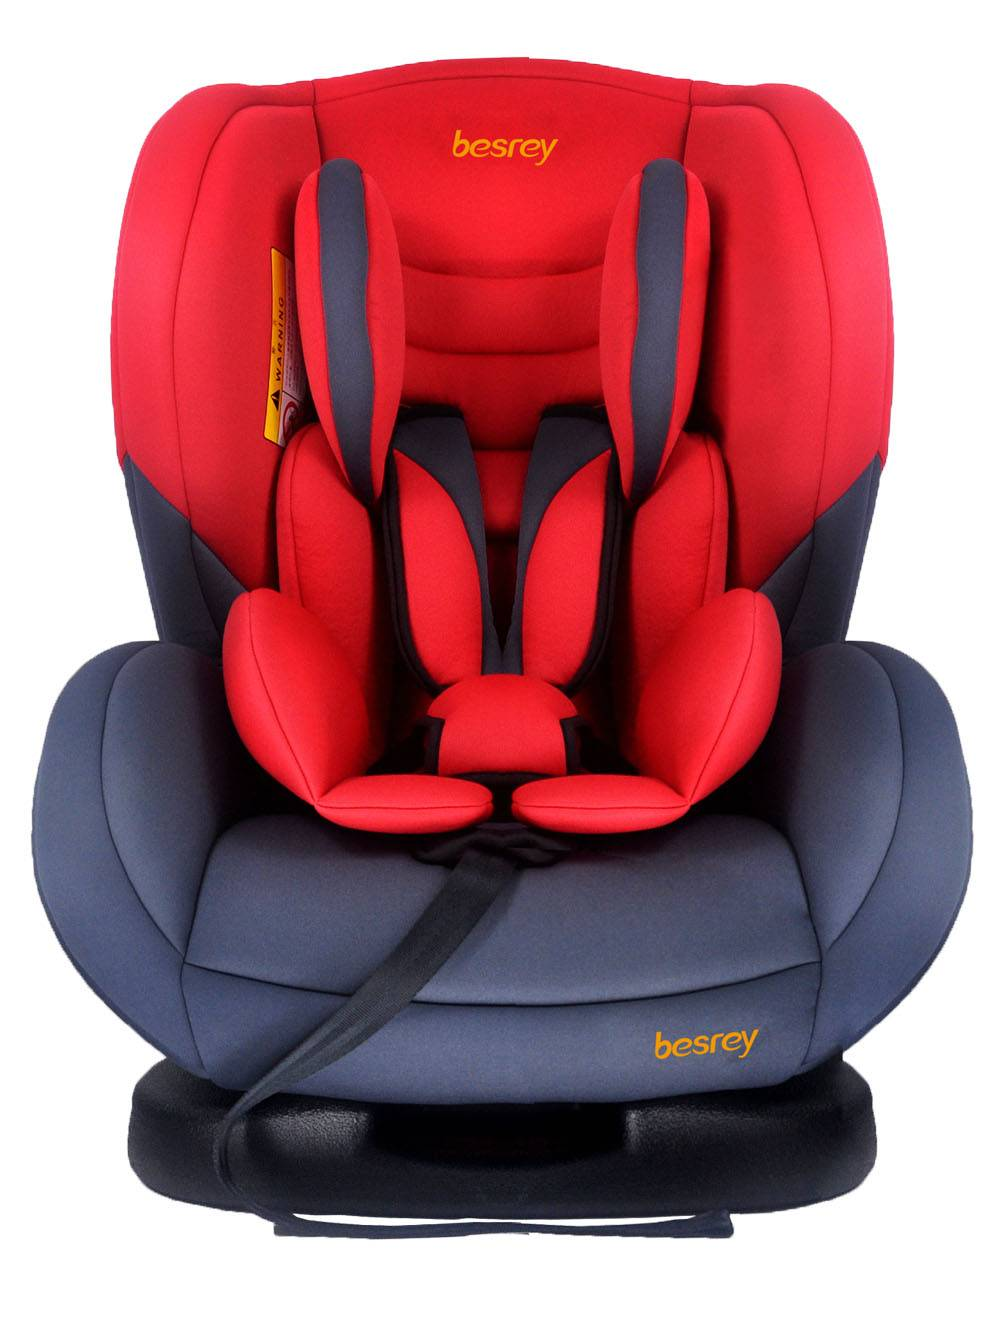 Selling baby car seat BY-1581RG